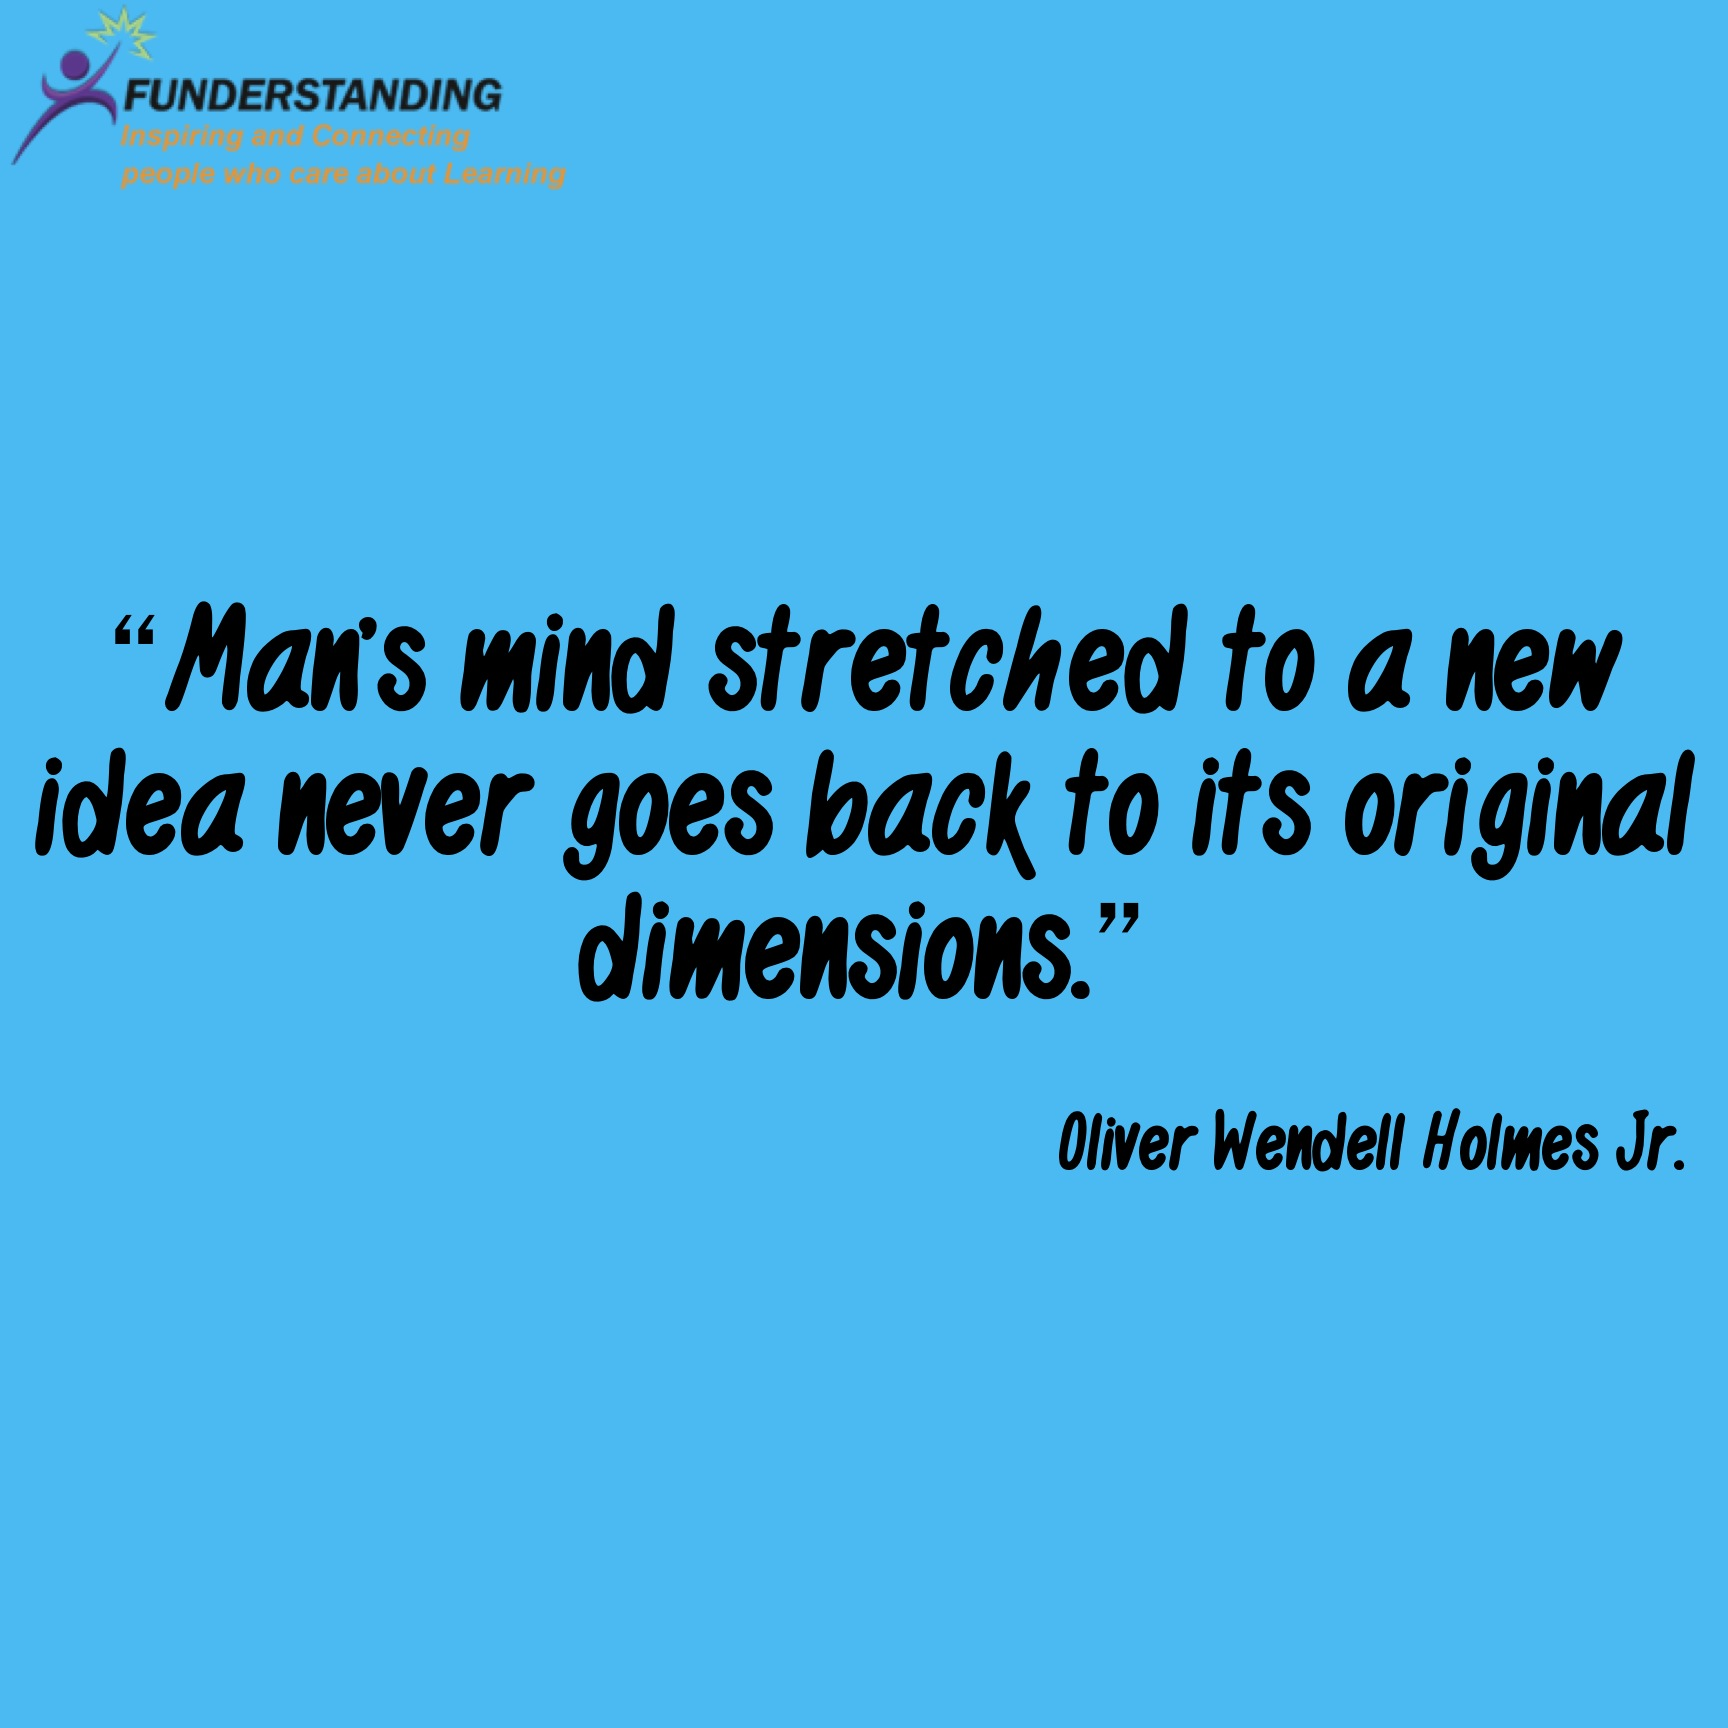 Famous Motivational Quotes For Students: Funderstanding: Education, Curriculum